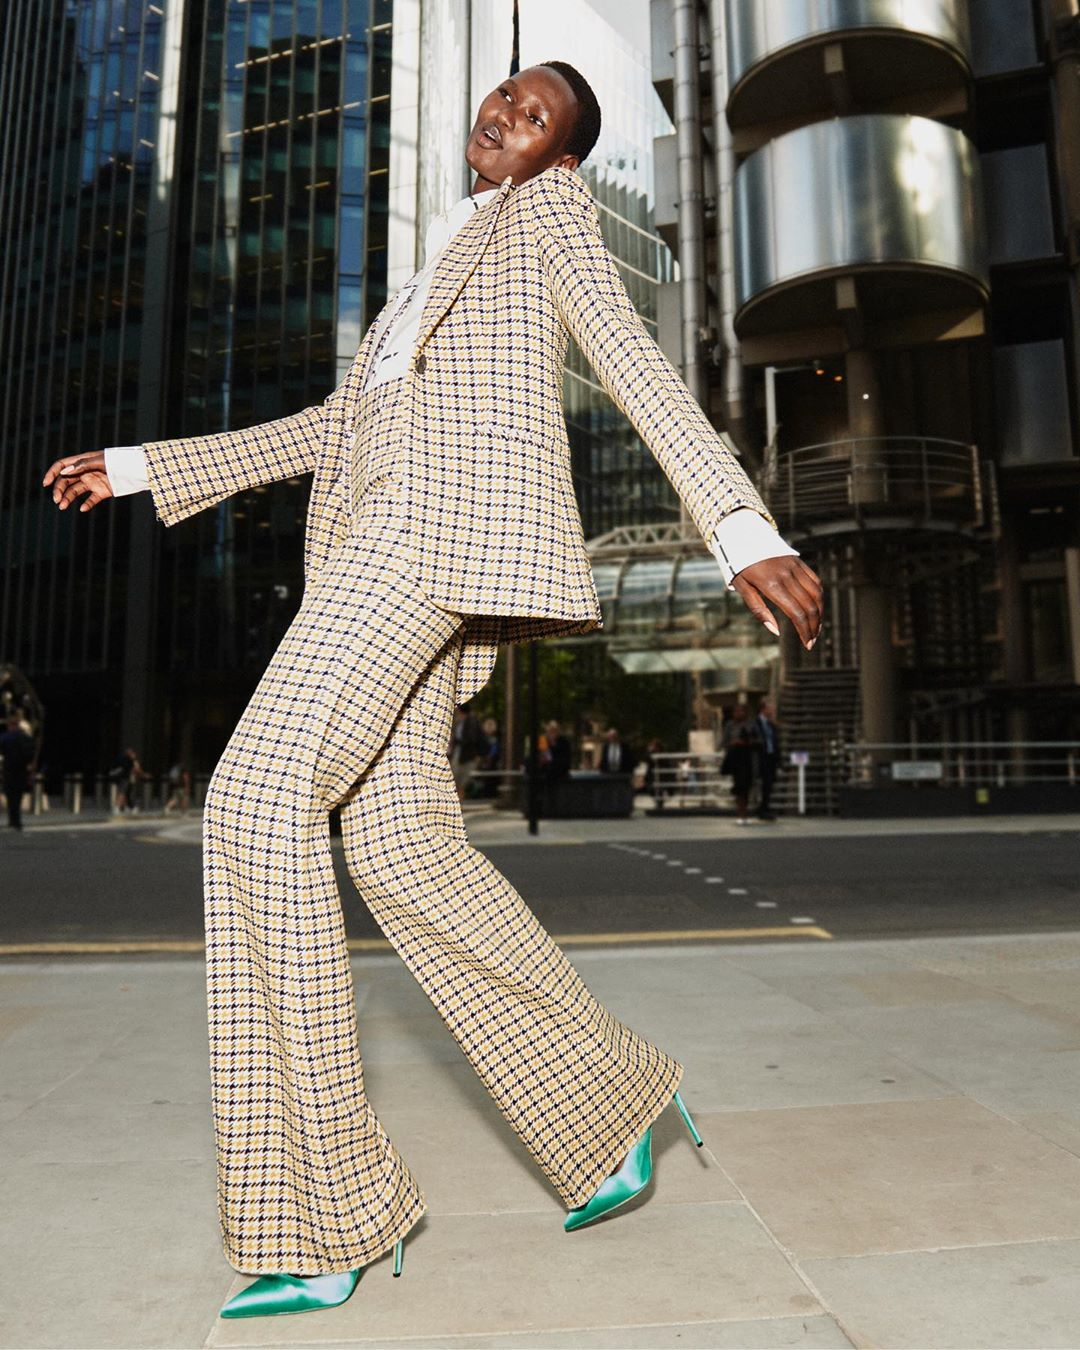 Victoria Beckham Instagram: A polished pantsuit marries British heritage fabrics with a 1970s silhouette for...